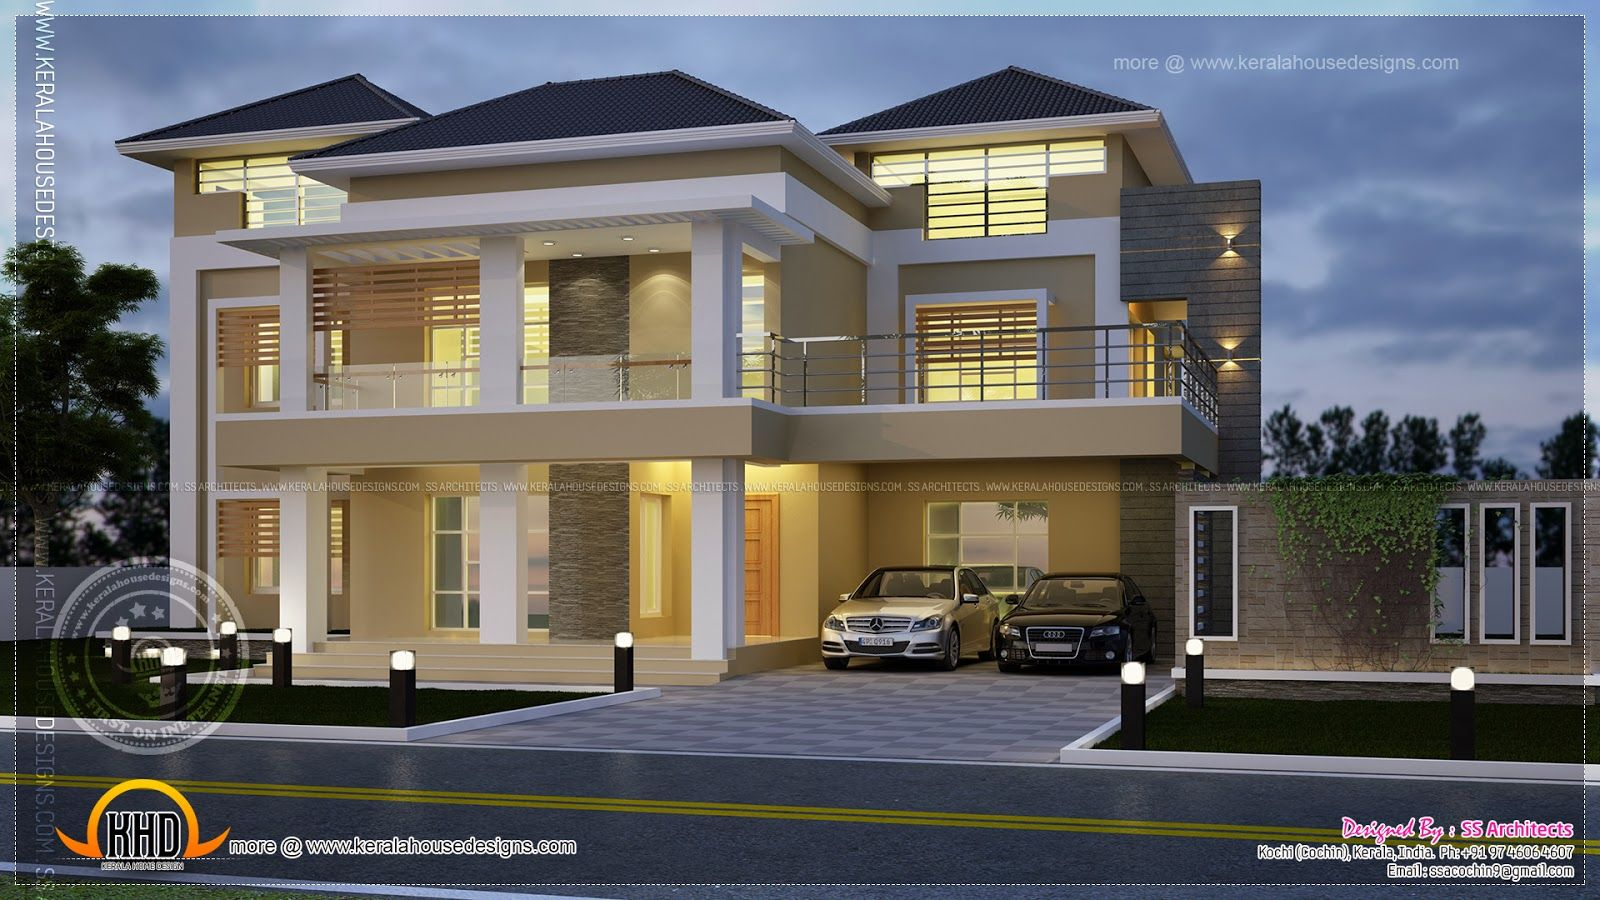 Modern villa night view elevation indian house plans for Villa design plan india